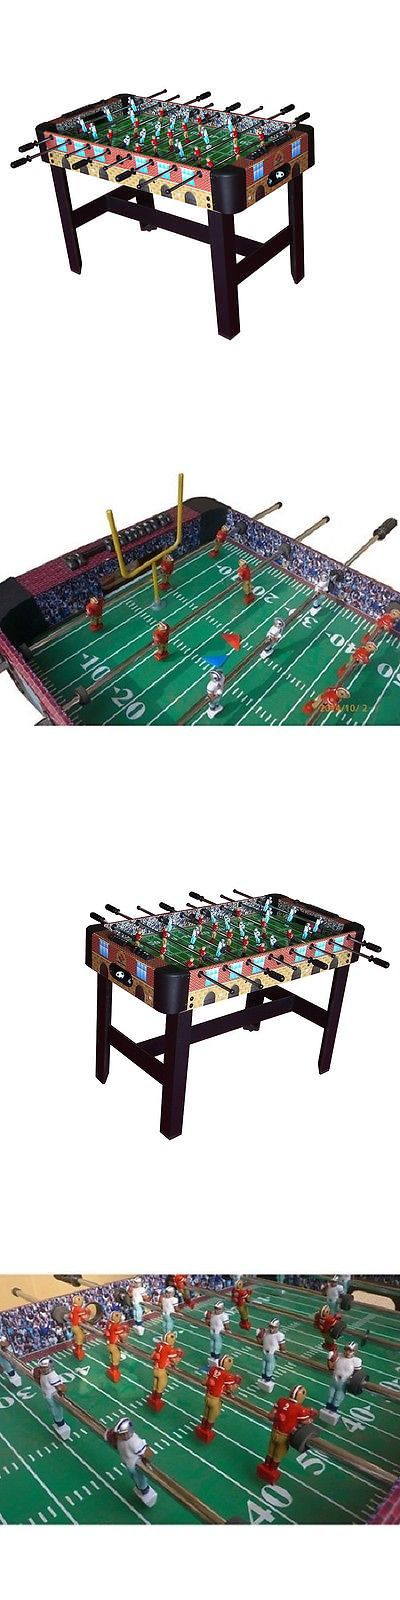 Foosball 36276: Foosball Table Soccer Foos Ball Football Family Game Room Arcade 2 Player Sports -> BUY IT NOW ONLY: $189.91 on eBay!